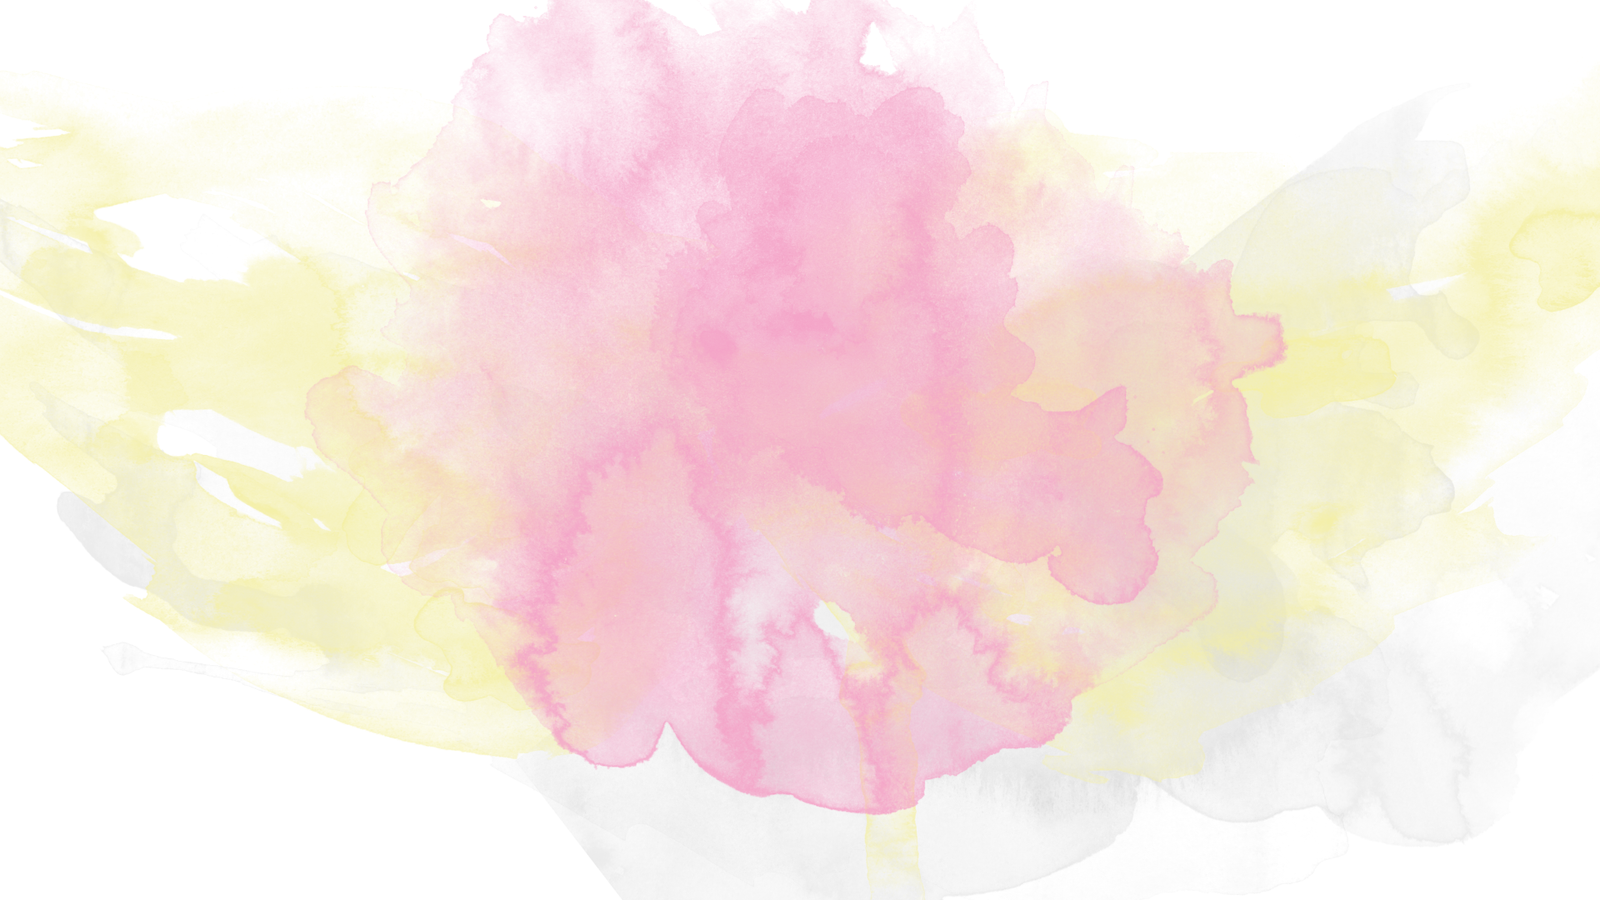 pink and yellow watercolor background by sayakime on